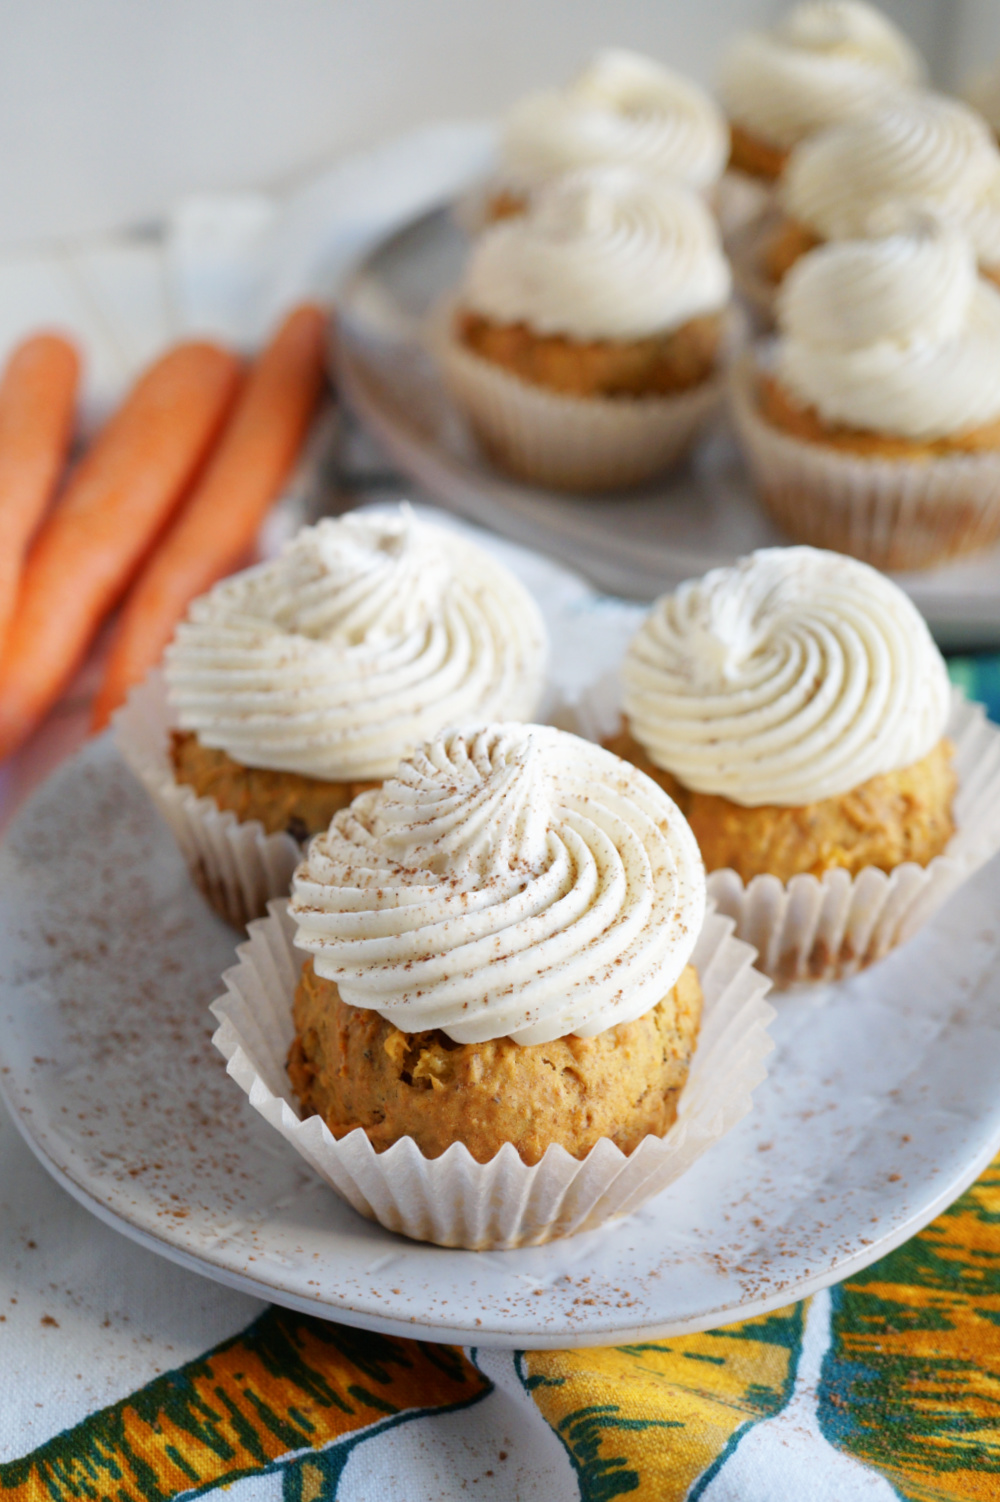 three carrot cupcakes on plate